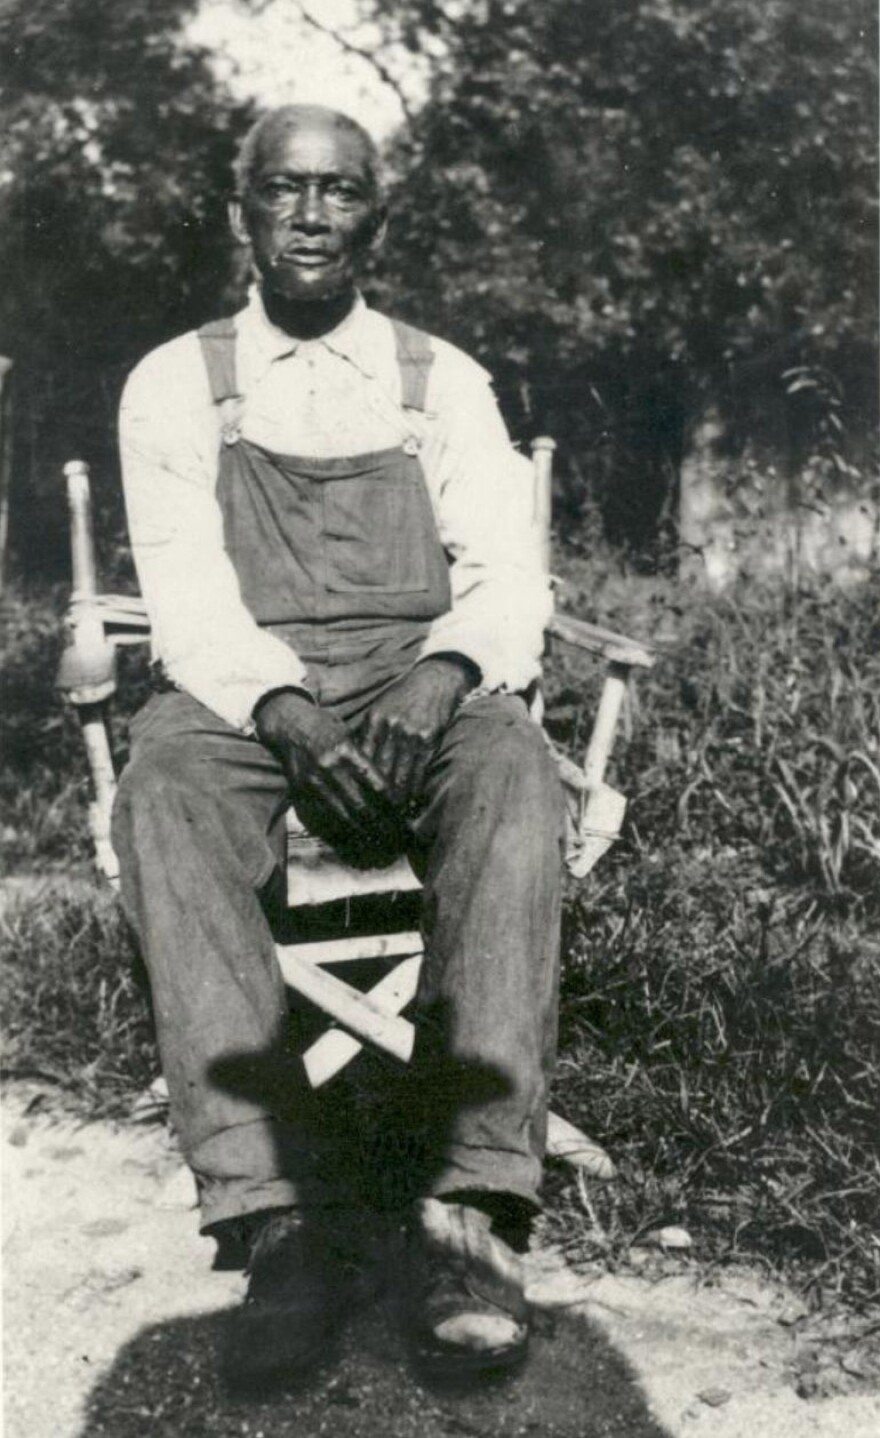 James Parks was born a slave on the Arlington estate. When the estate became Arlington National Cemetery, he stayed on as a freed man and dug graves.